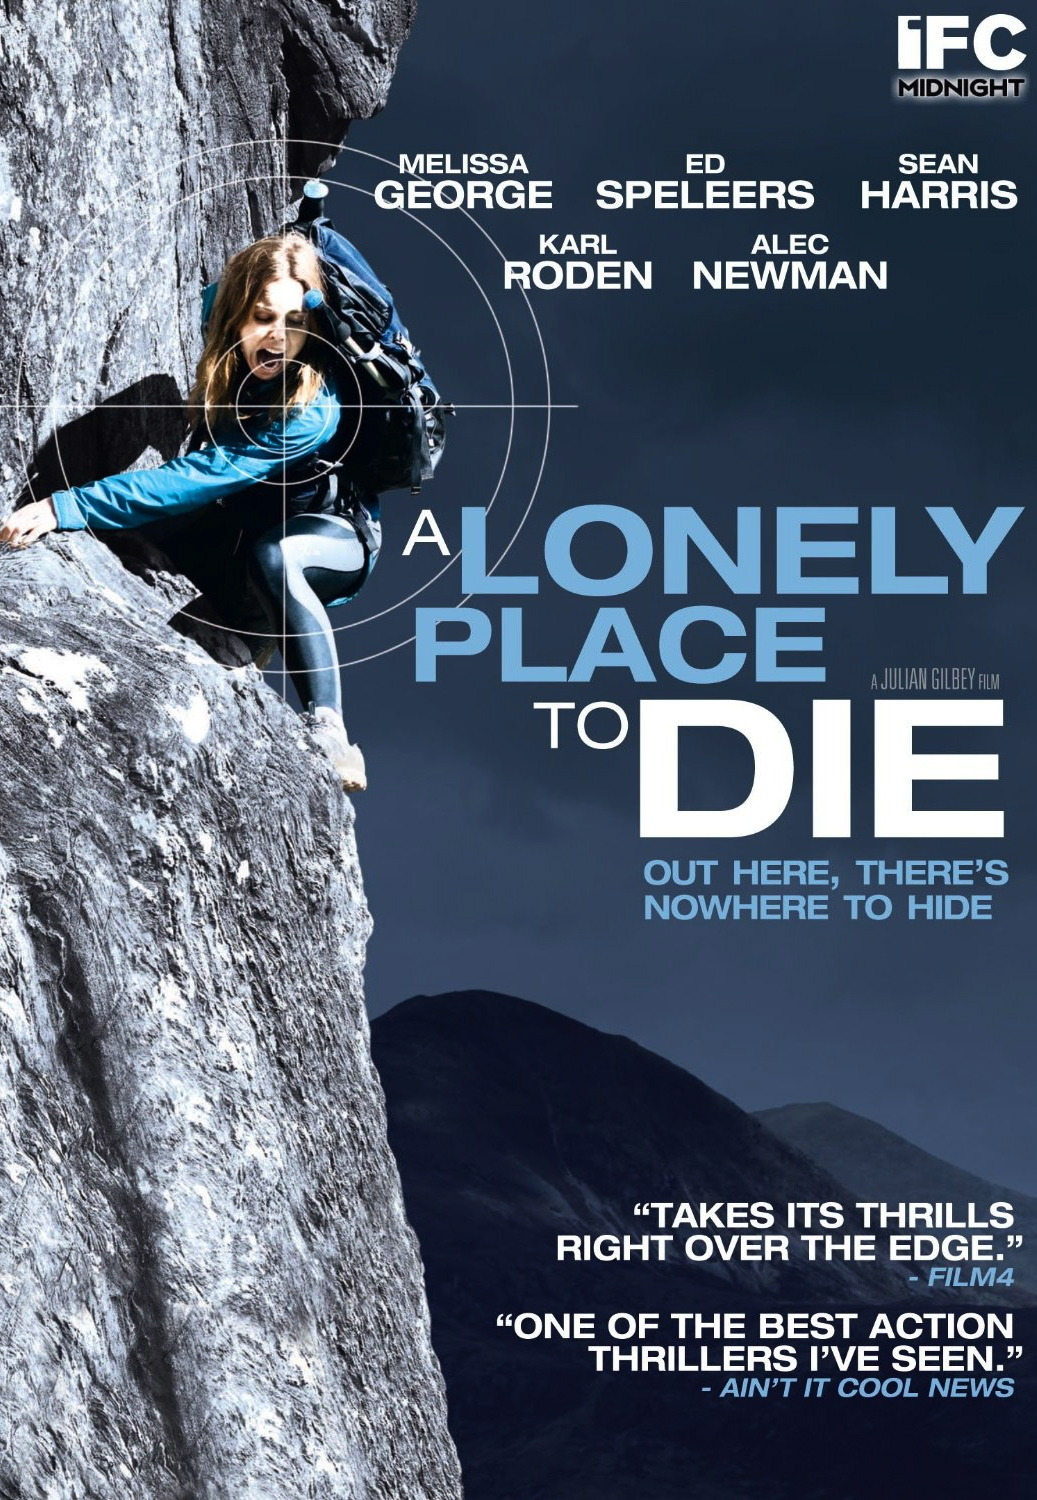 Film A Lonely Place To Die